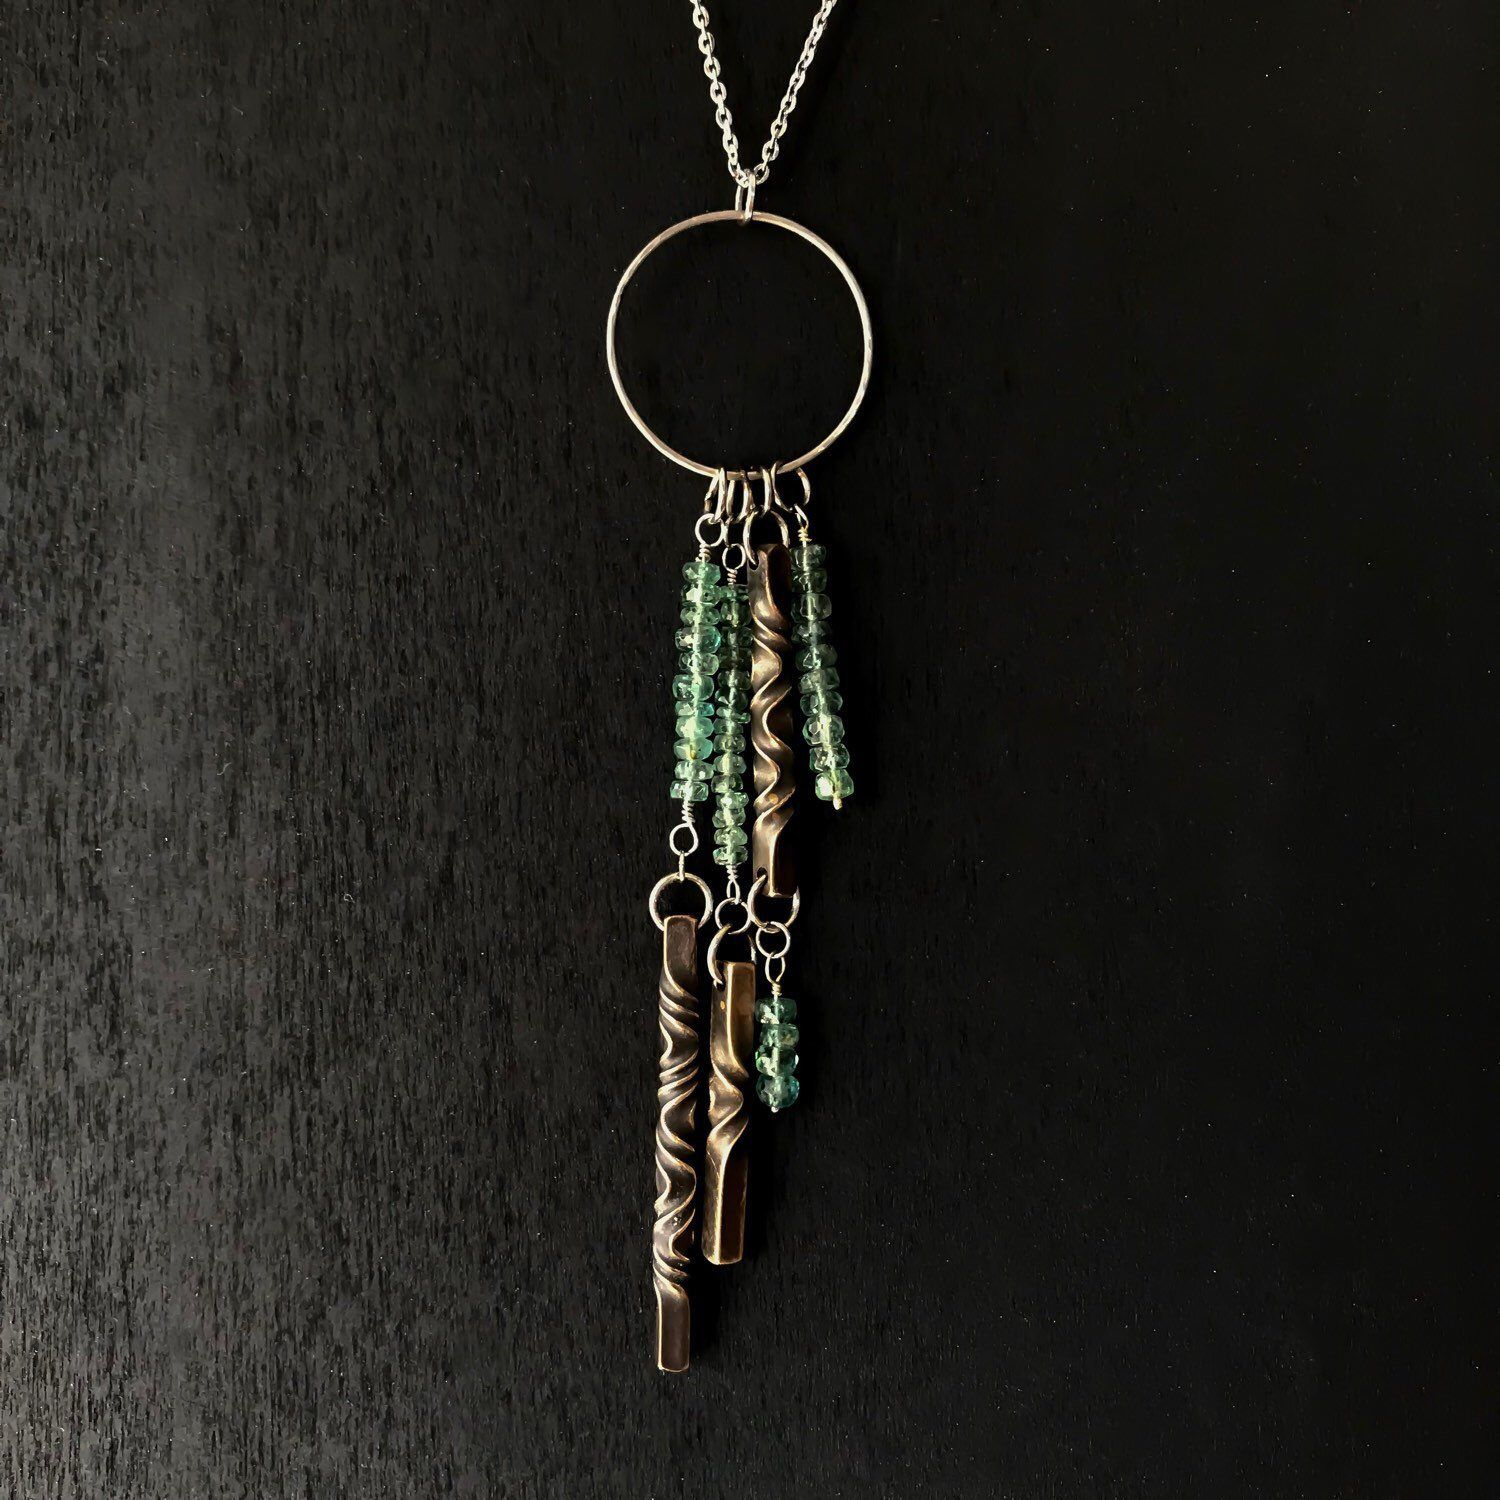 8th anniversary gift for wife Bronze and tourmaline